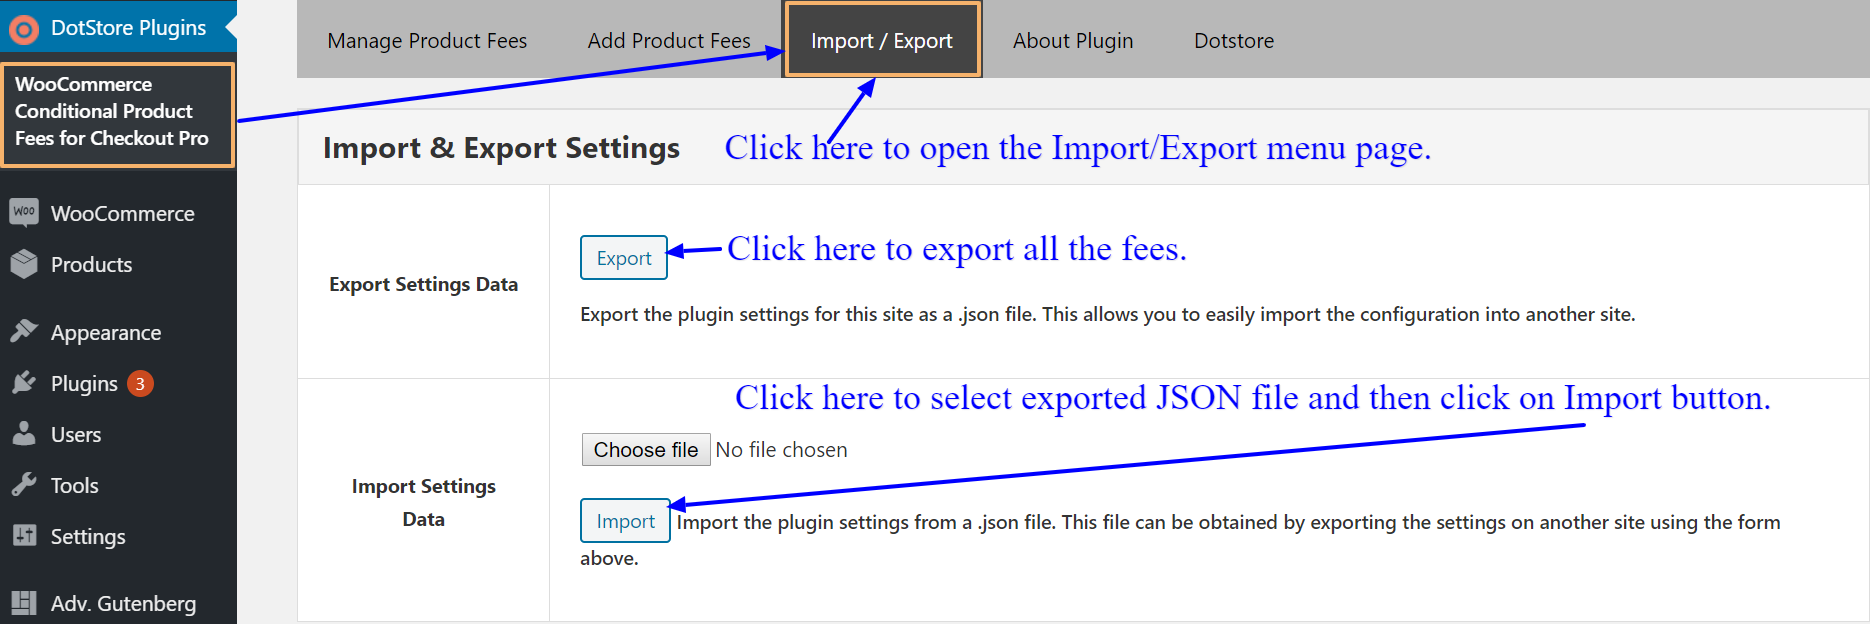 How to export and import conditional fees